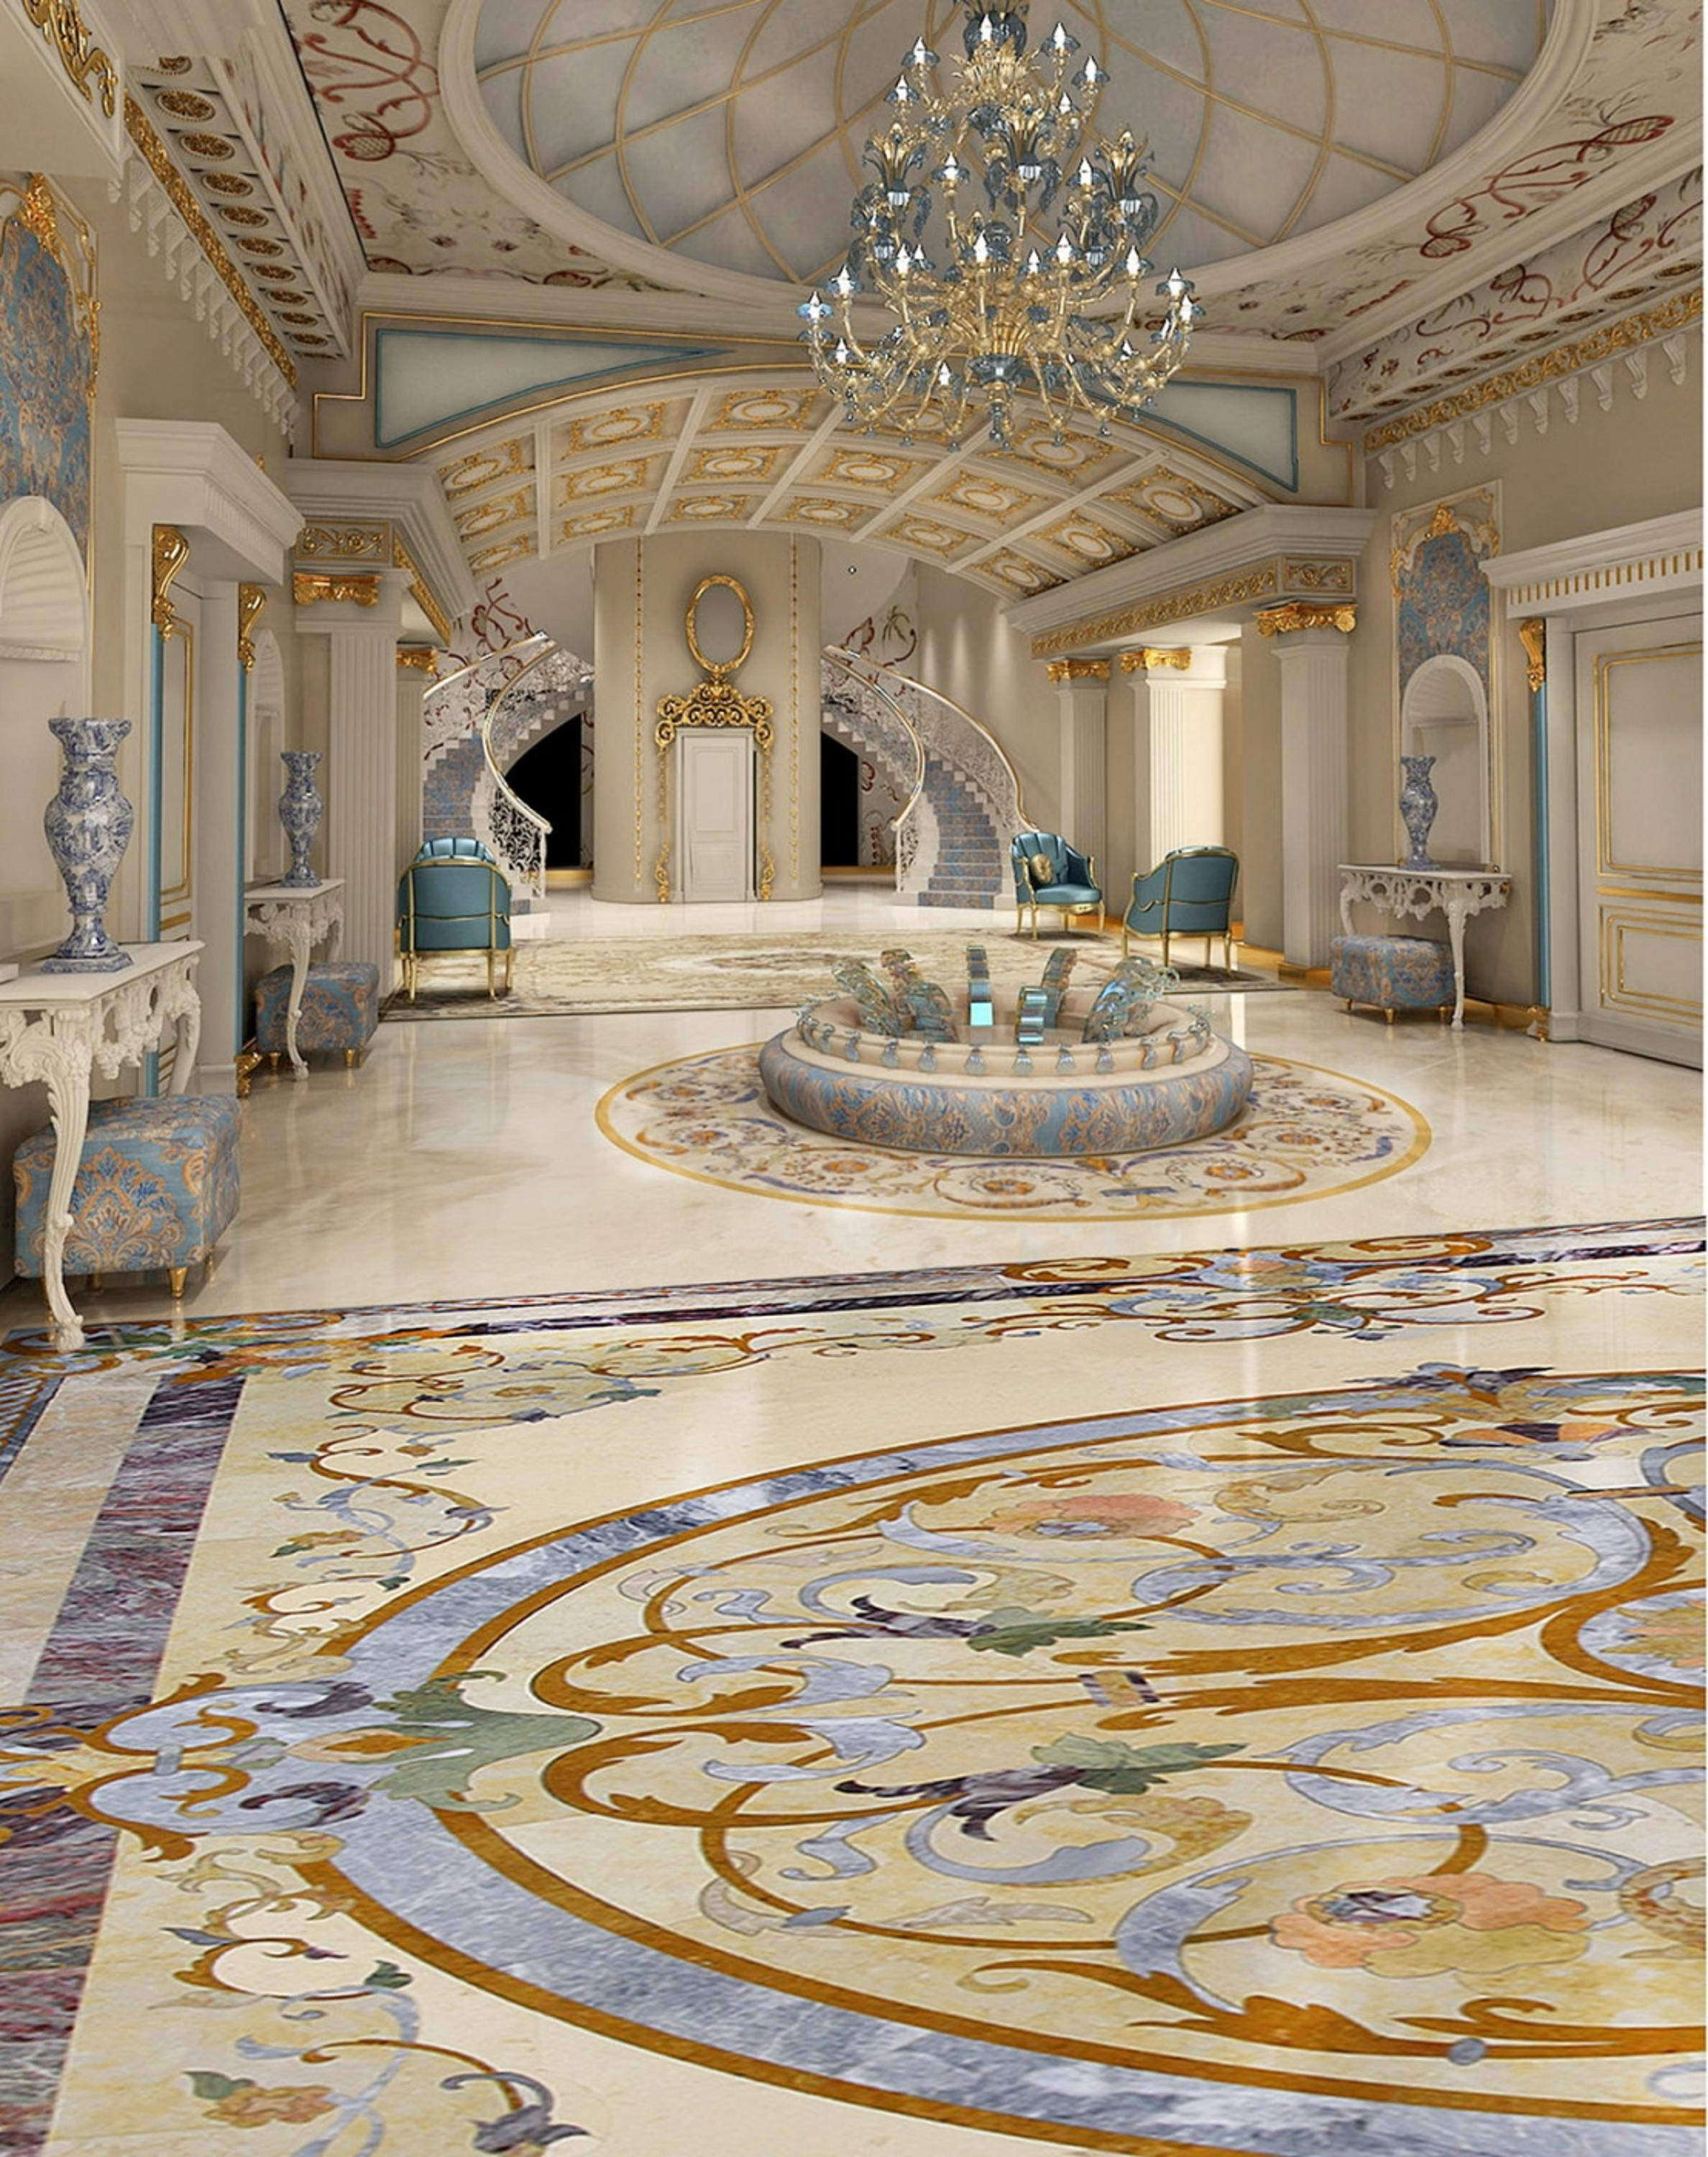 Custom pictures waterjet cutting floor flower tiles design marble custom pictures waterjet cutting floor flower tiles design marble medallion tile lowes dailygadgetfo Images